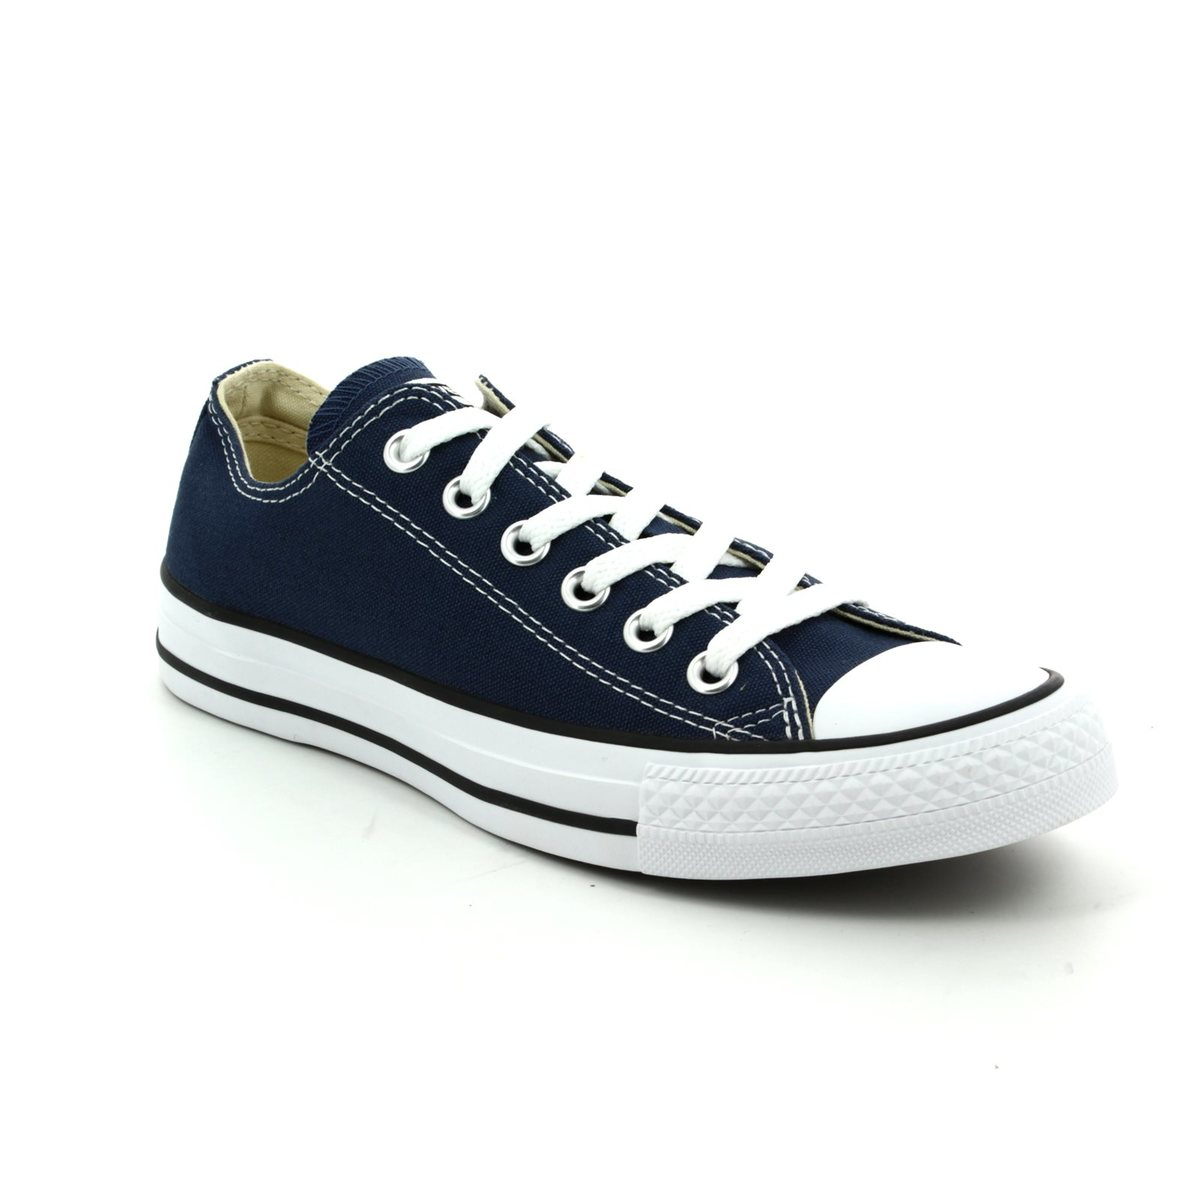 dc6a9334d11 Converse Trainers - Navy - M9697C All Star OX Classic